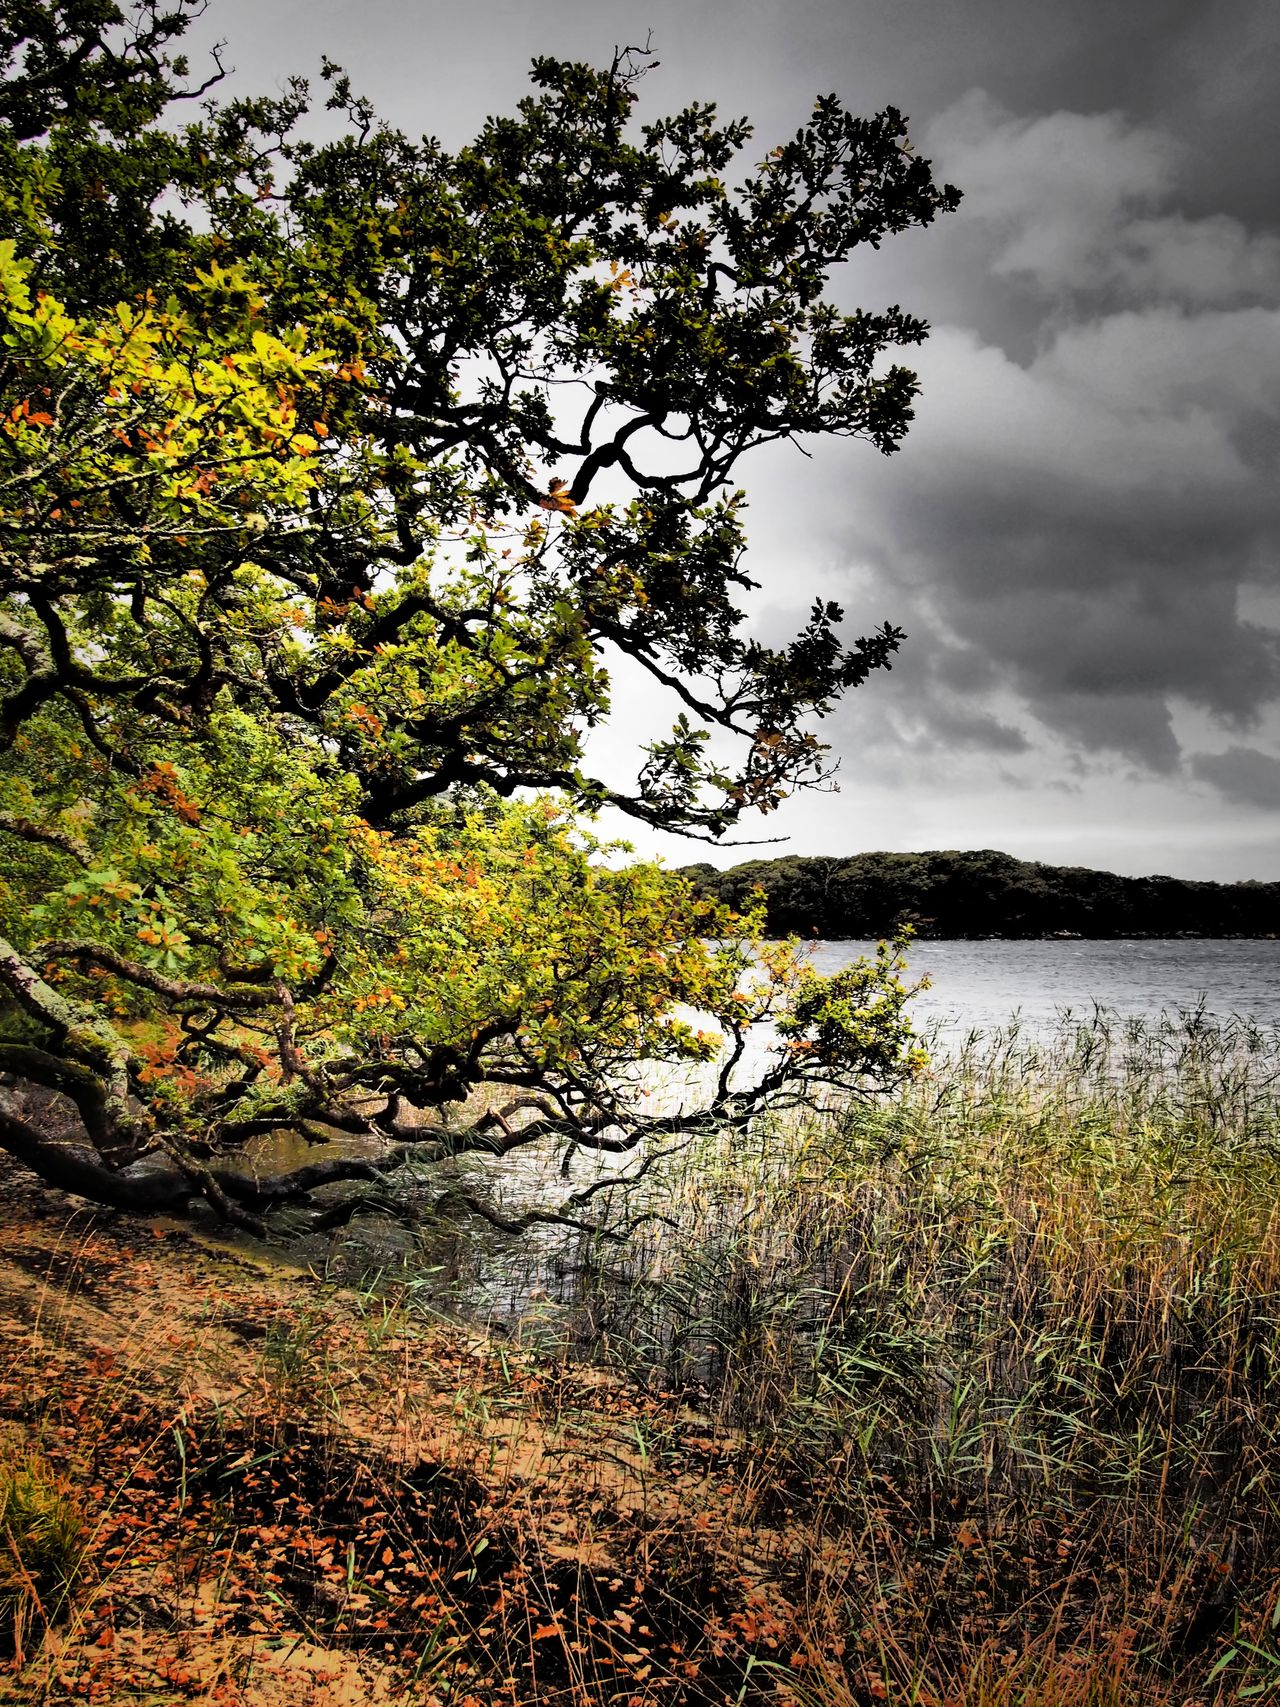 Dinish Island Killarney National Park Ireland Lake View Landscape Landscapes Beauty In Nature Water Nature Scenics Outdoors Autumn Autumn Colours Autumn Colors Muckross Lough Reeds Tranquil Scene EyeEm Nature Lover Overcast Trees Hiking